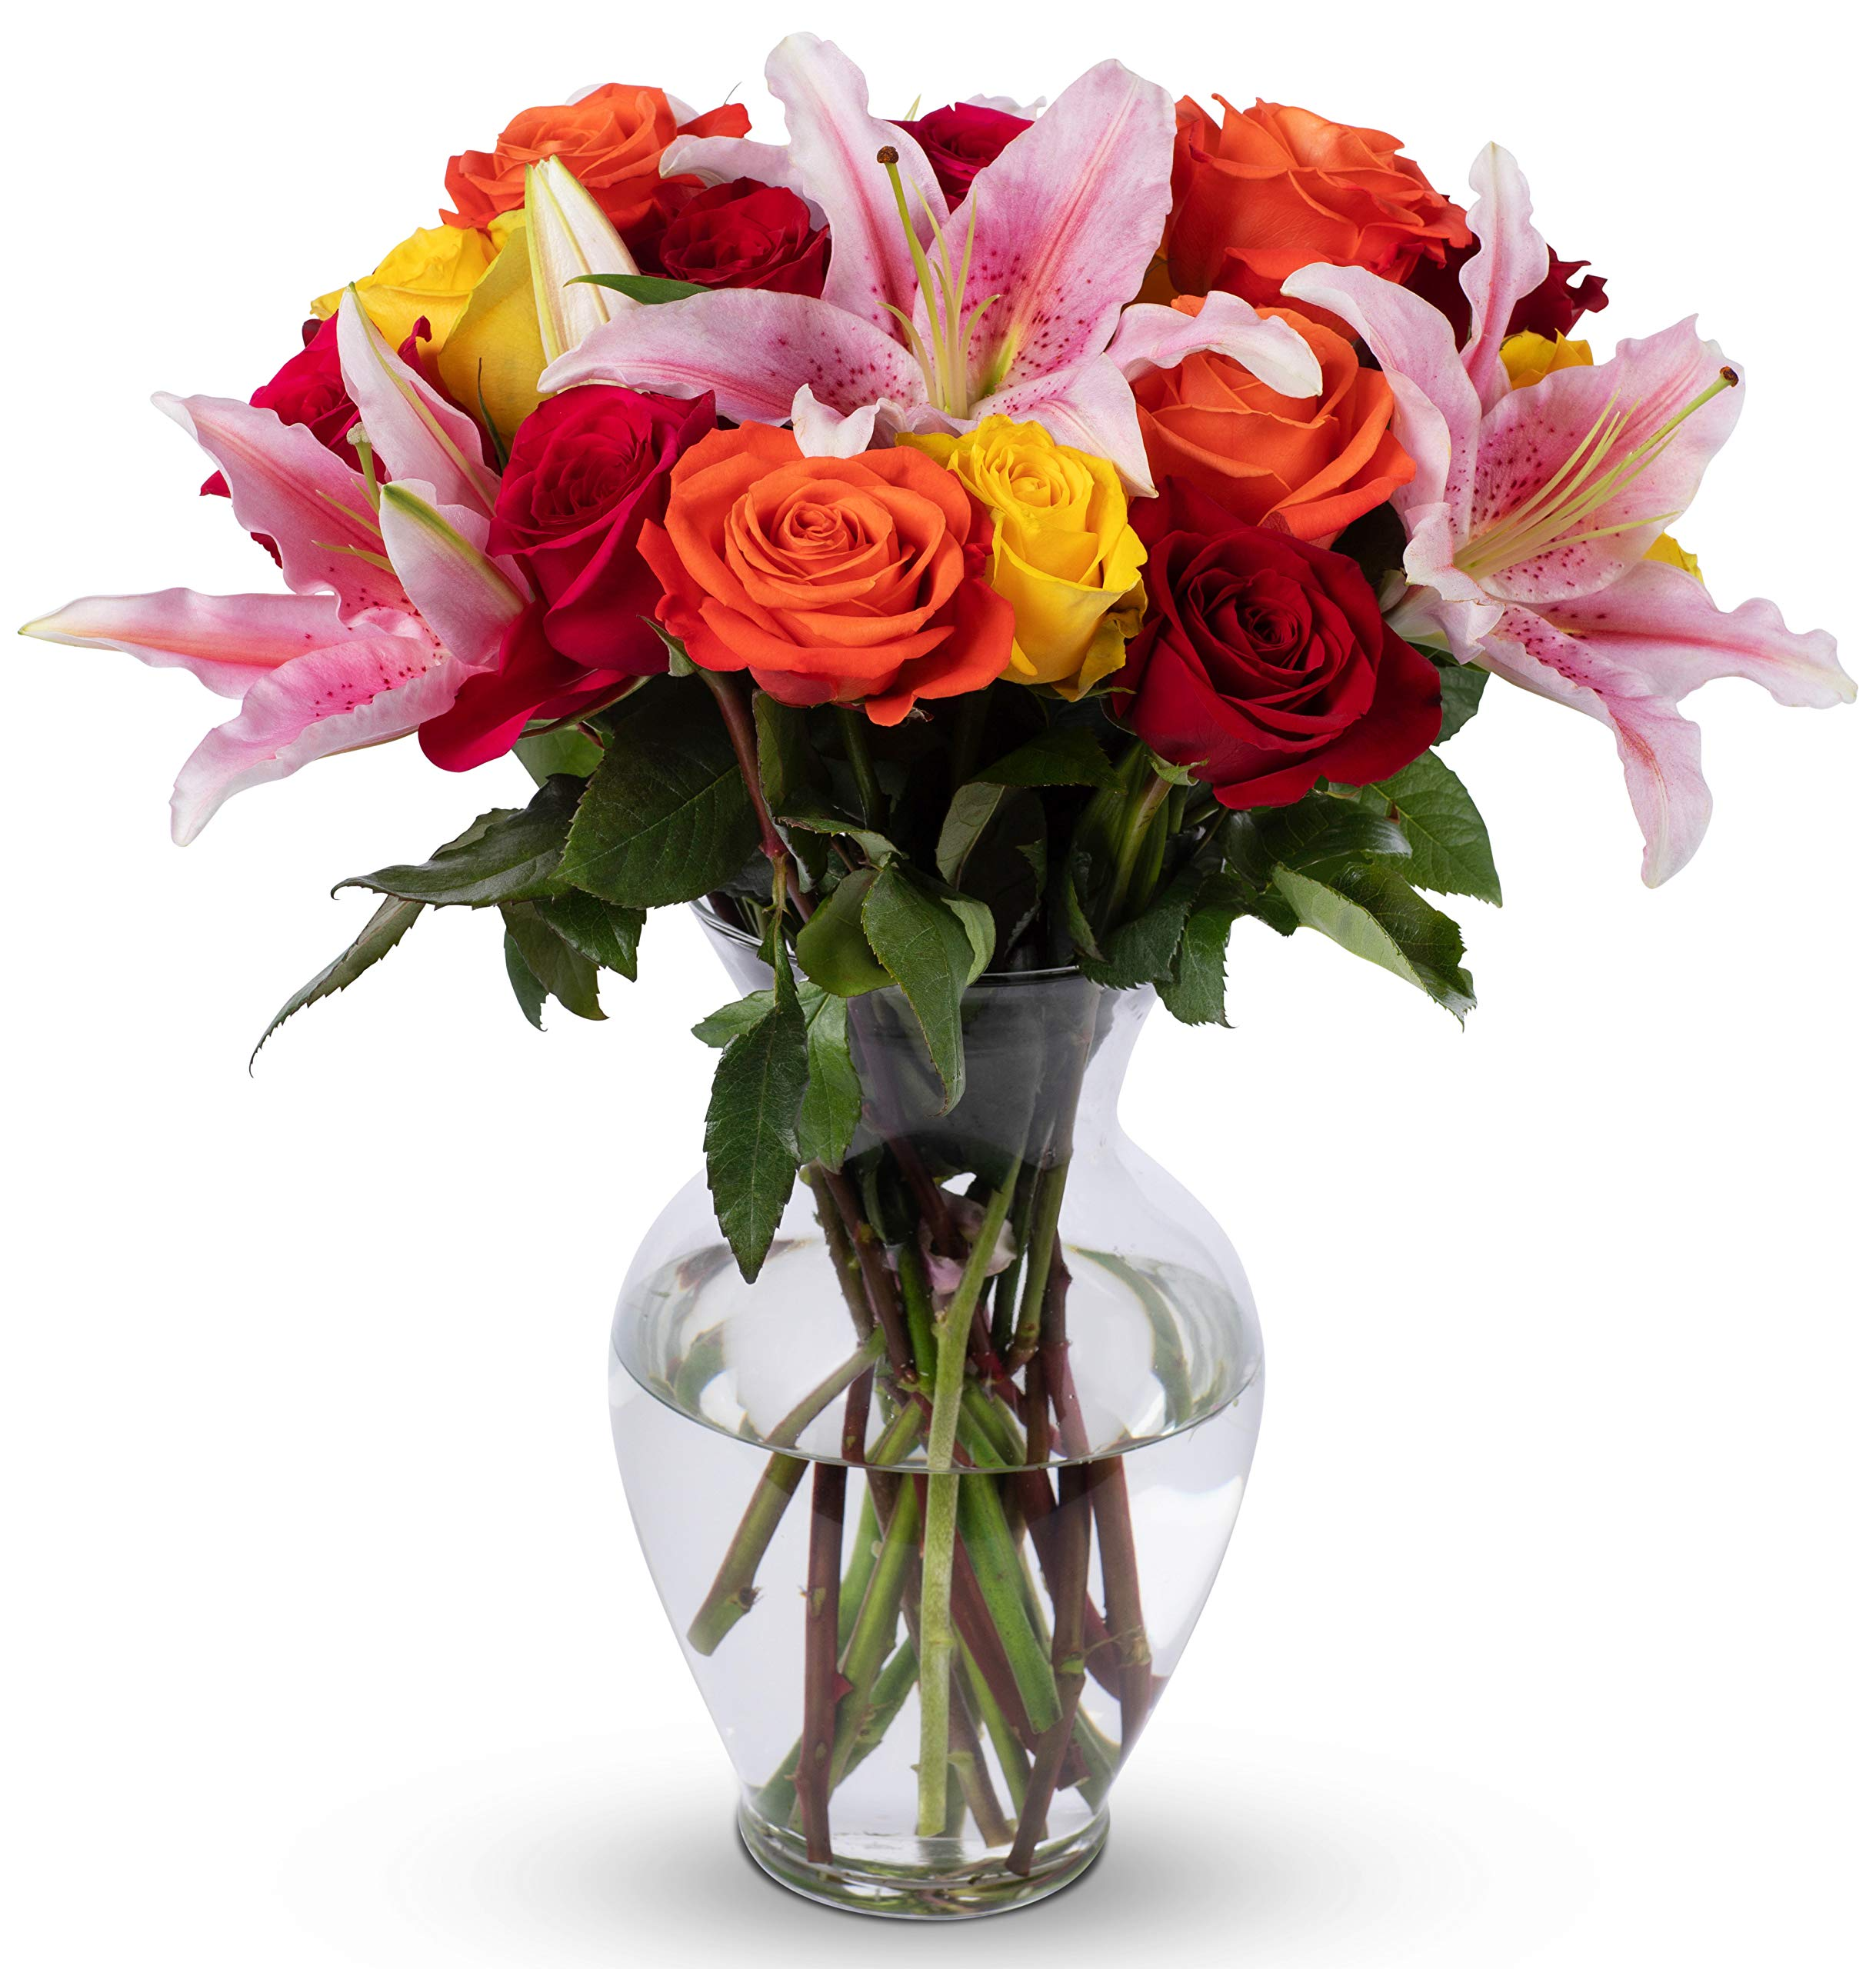 Flowers In Vase: Amazon.com : Benchmark Bouquets Multi-Colored Tulips, With